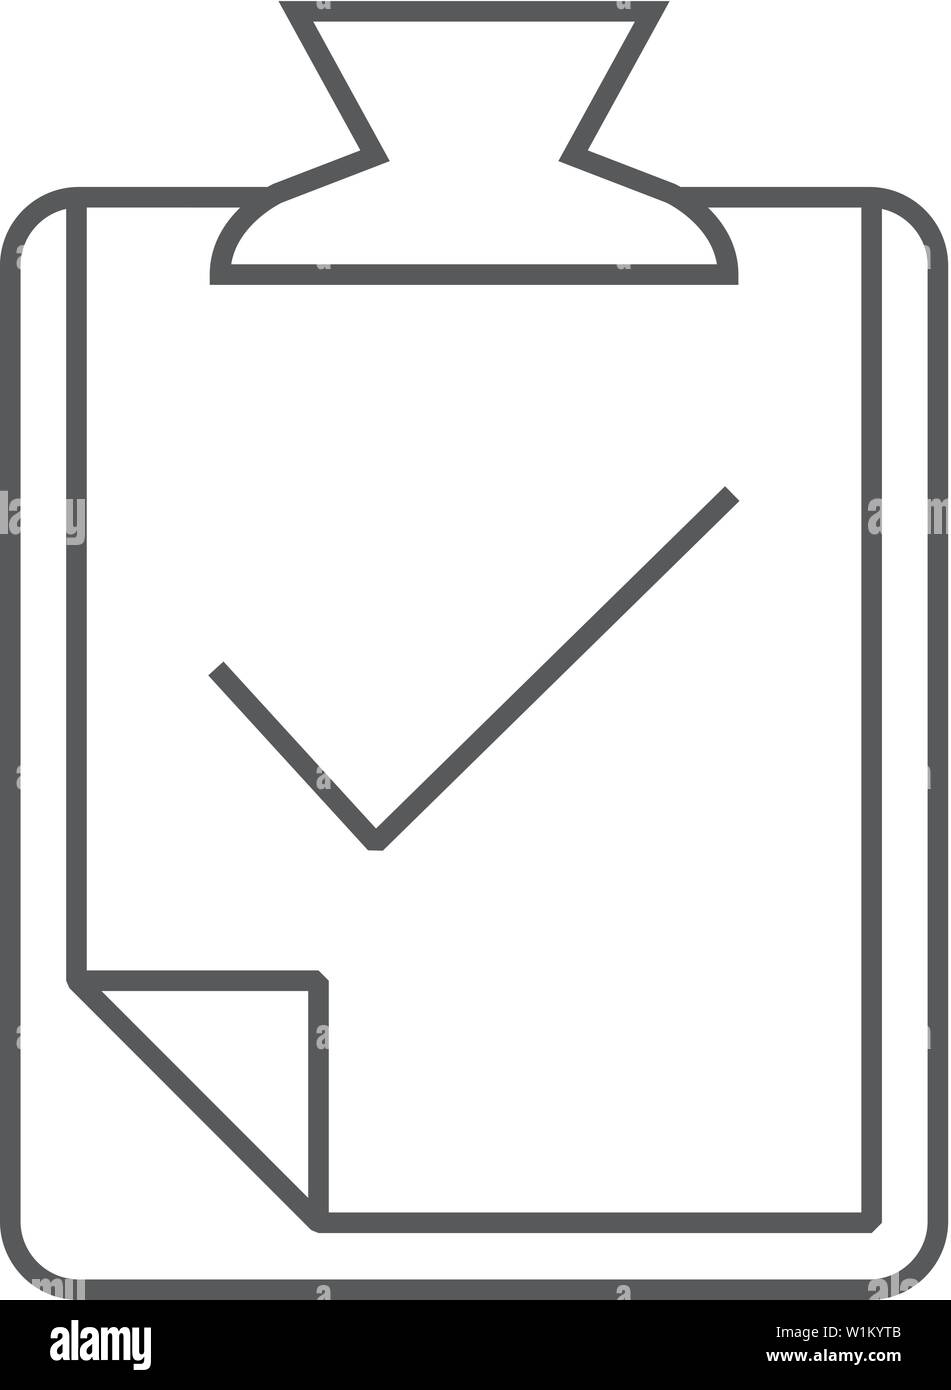 Checkmark icon in thin outline style  Events organizer